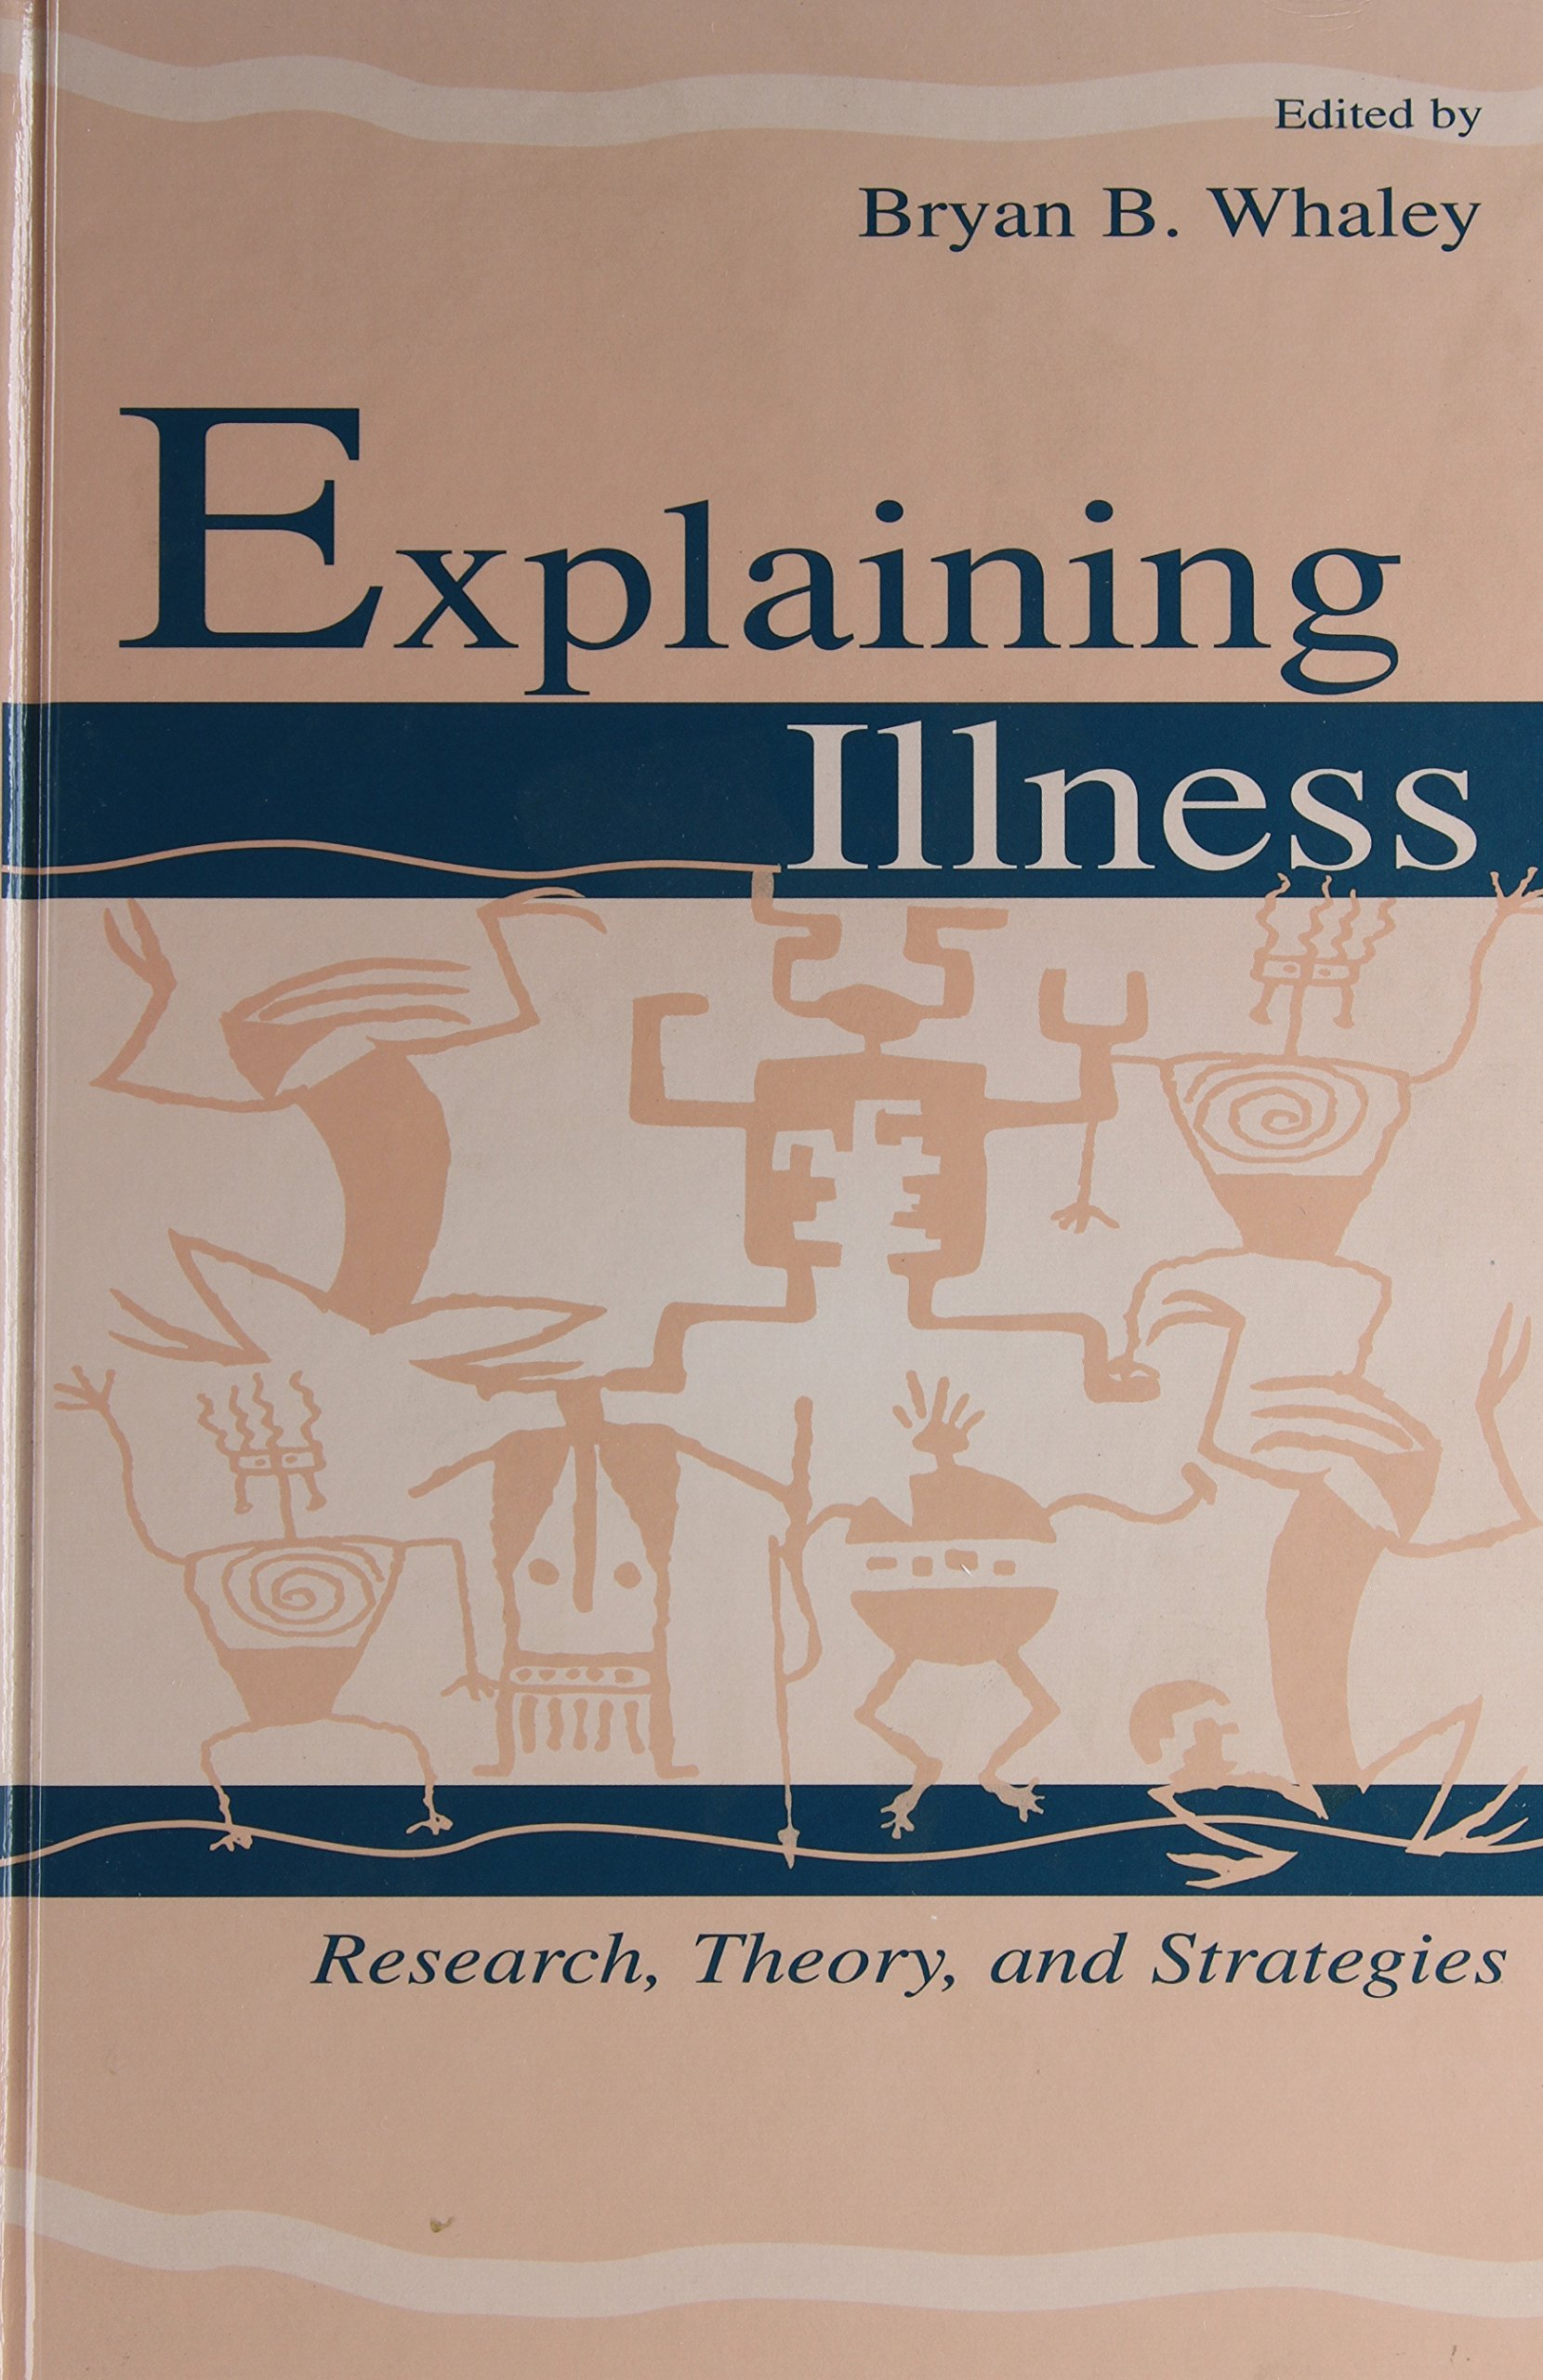 Explaining Illness: Research, Theory, and Strategies (Routledge Communication Series) by Brand: Routledge